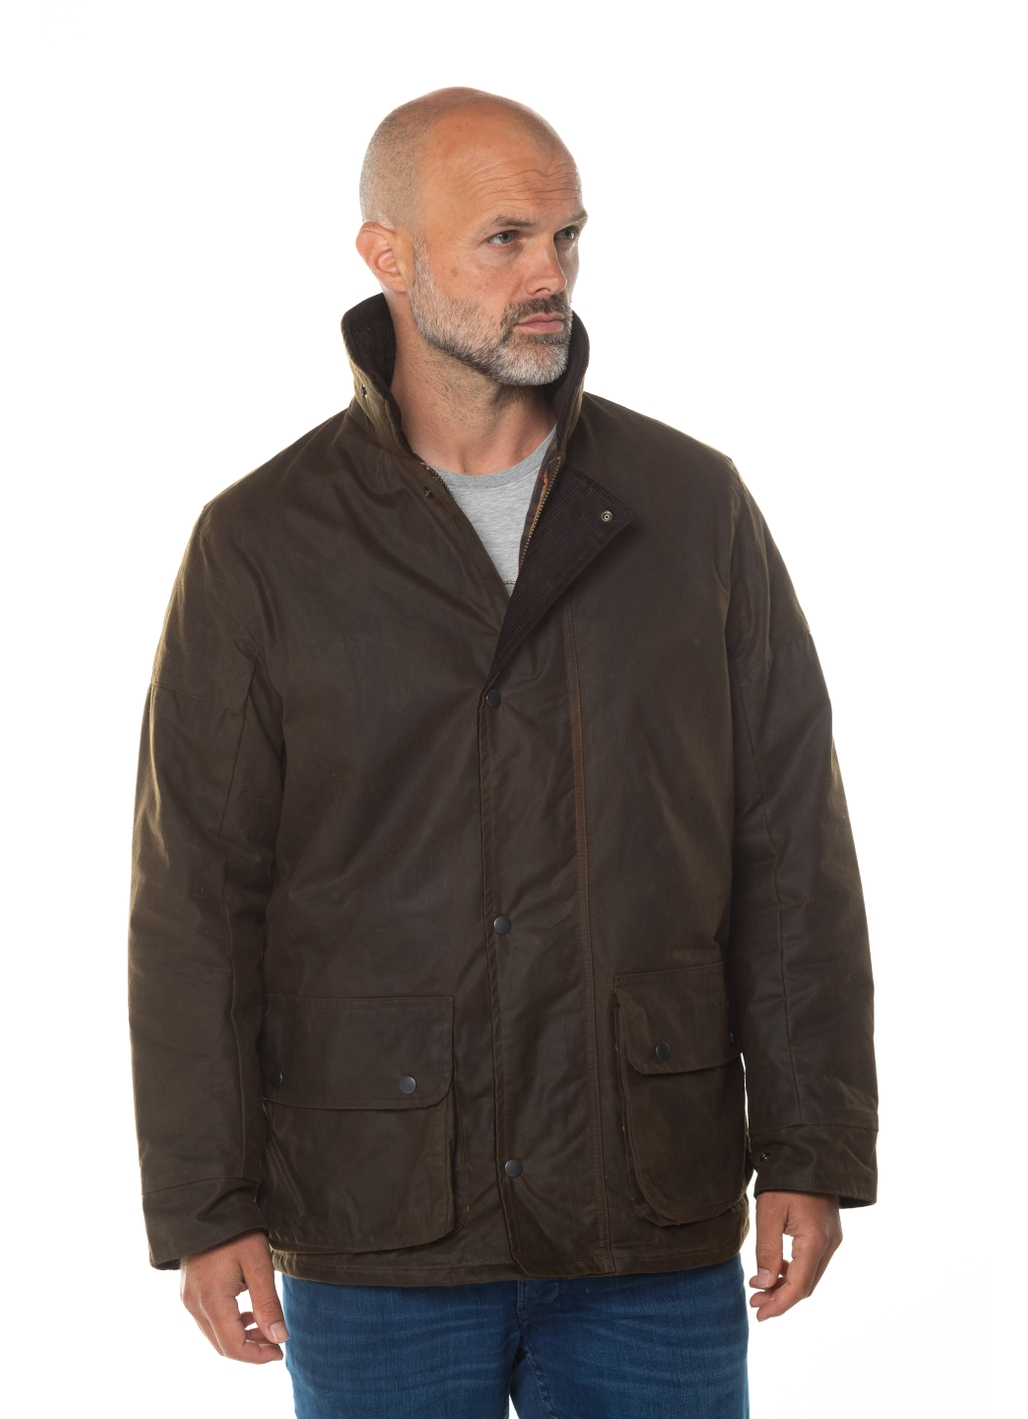 Chelsea UK Made Waxed Jacket in Brown